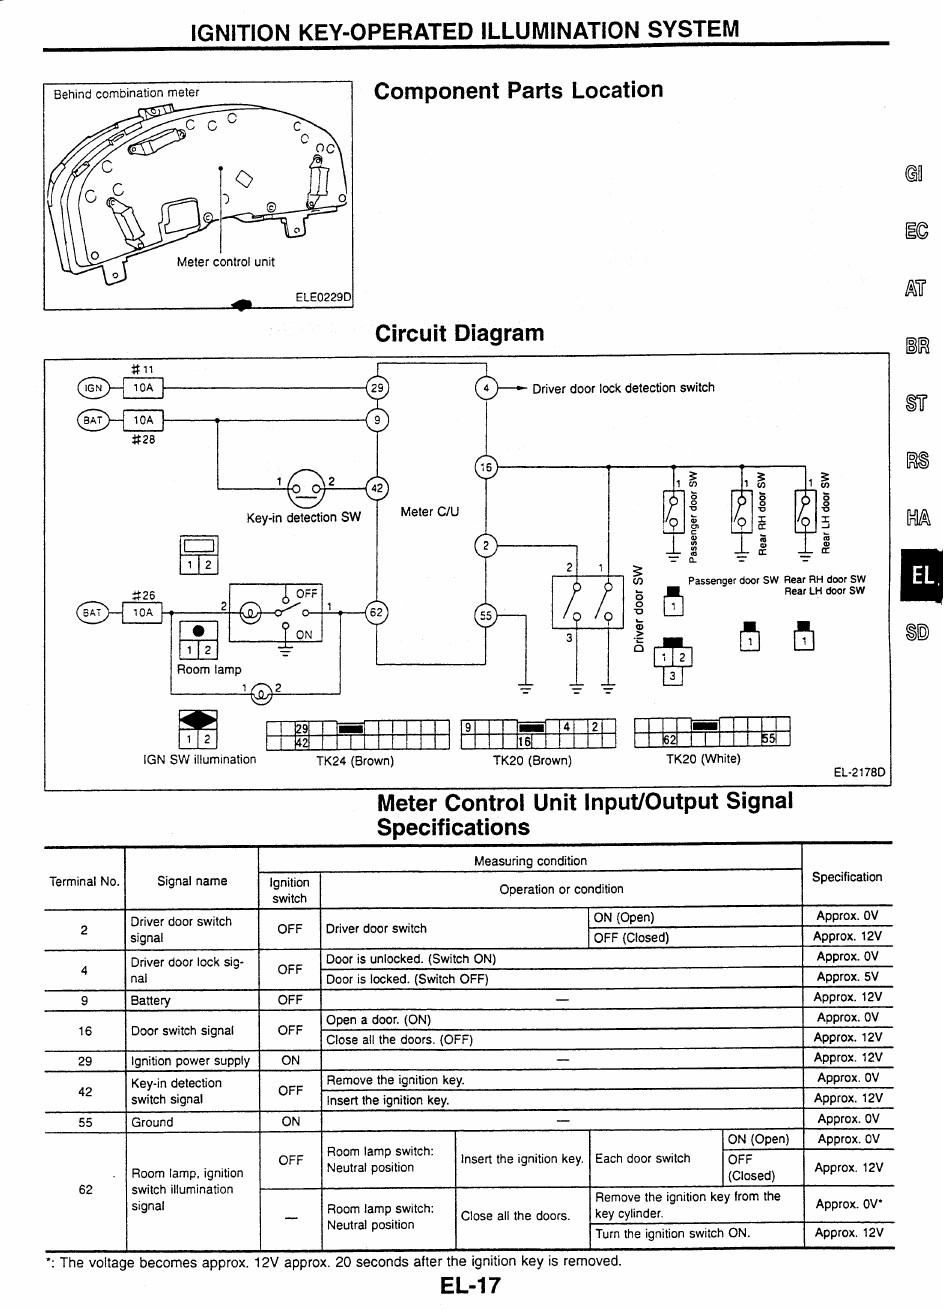 r34 gtt dash clutser wiring diagram - general maintenance ... 1986 chevy diesel alternator wiring diagram gtr wiring diagram #9